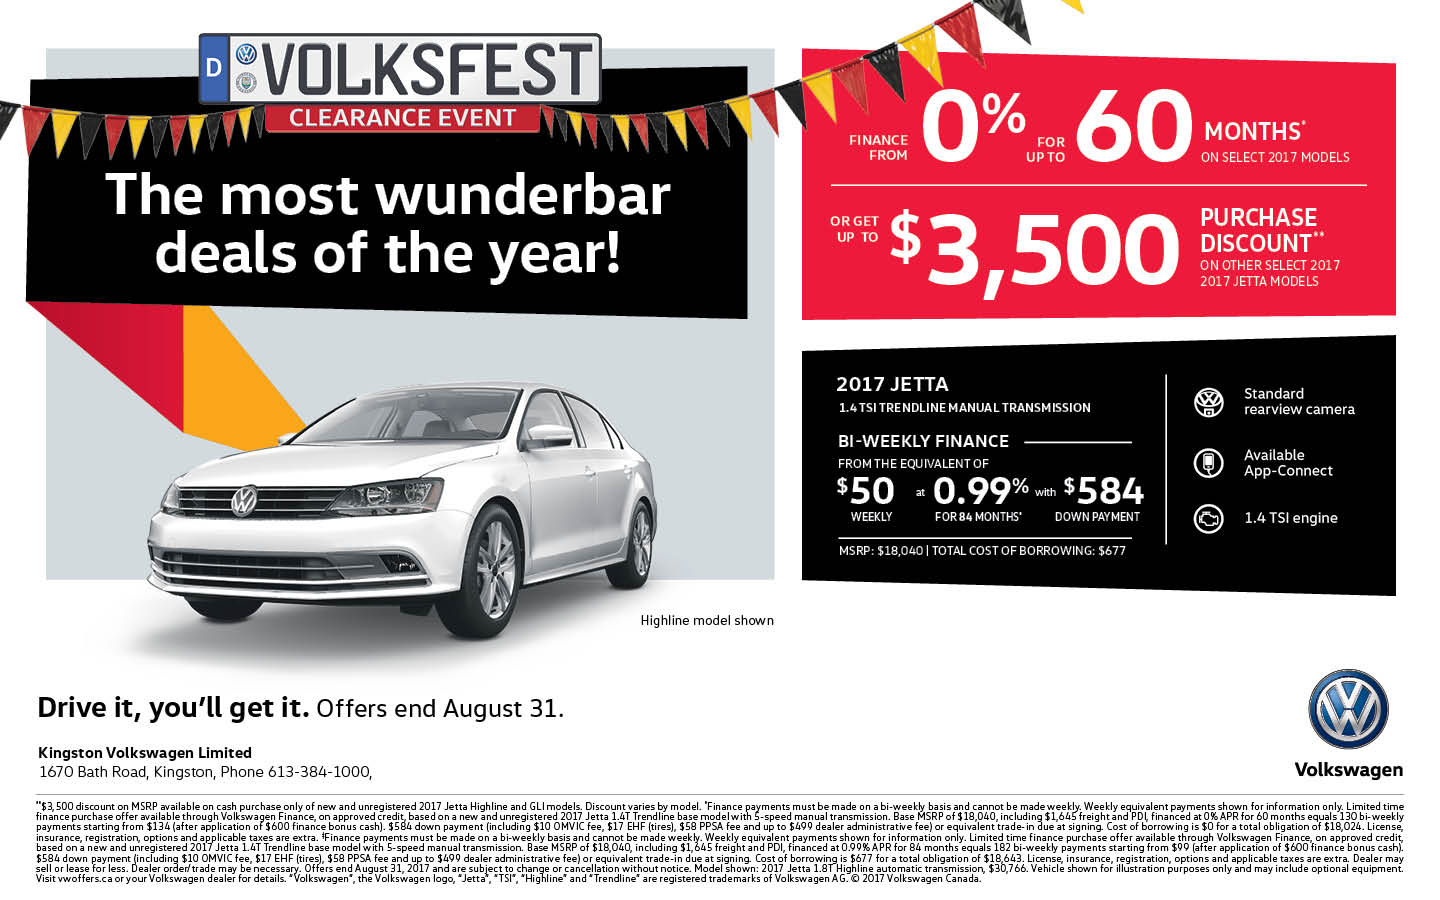 2017 Jetta | Volksfest Clearance Event